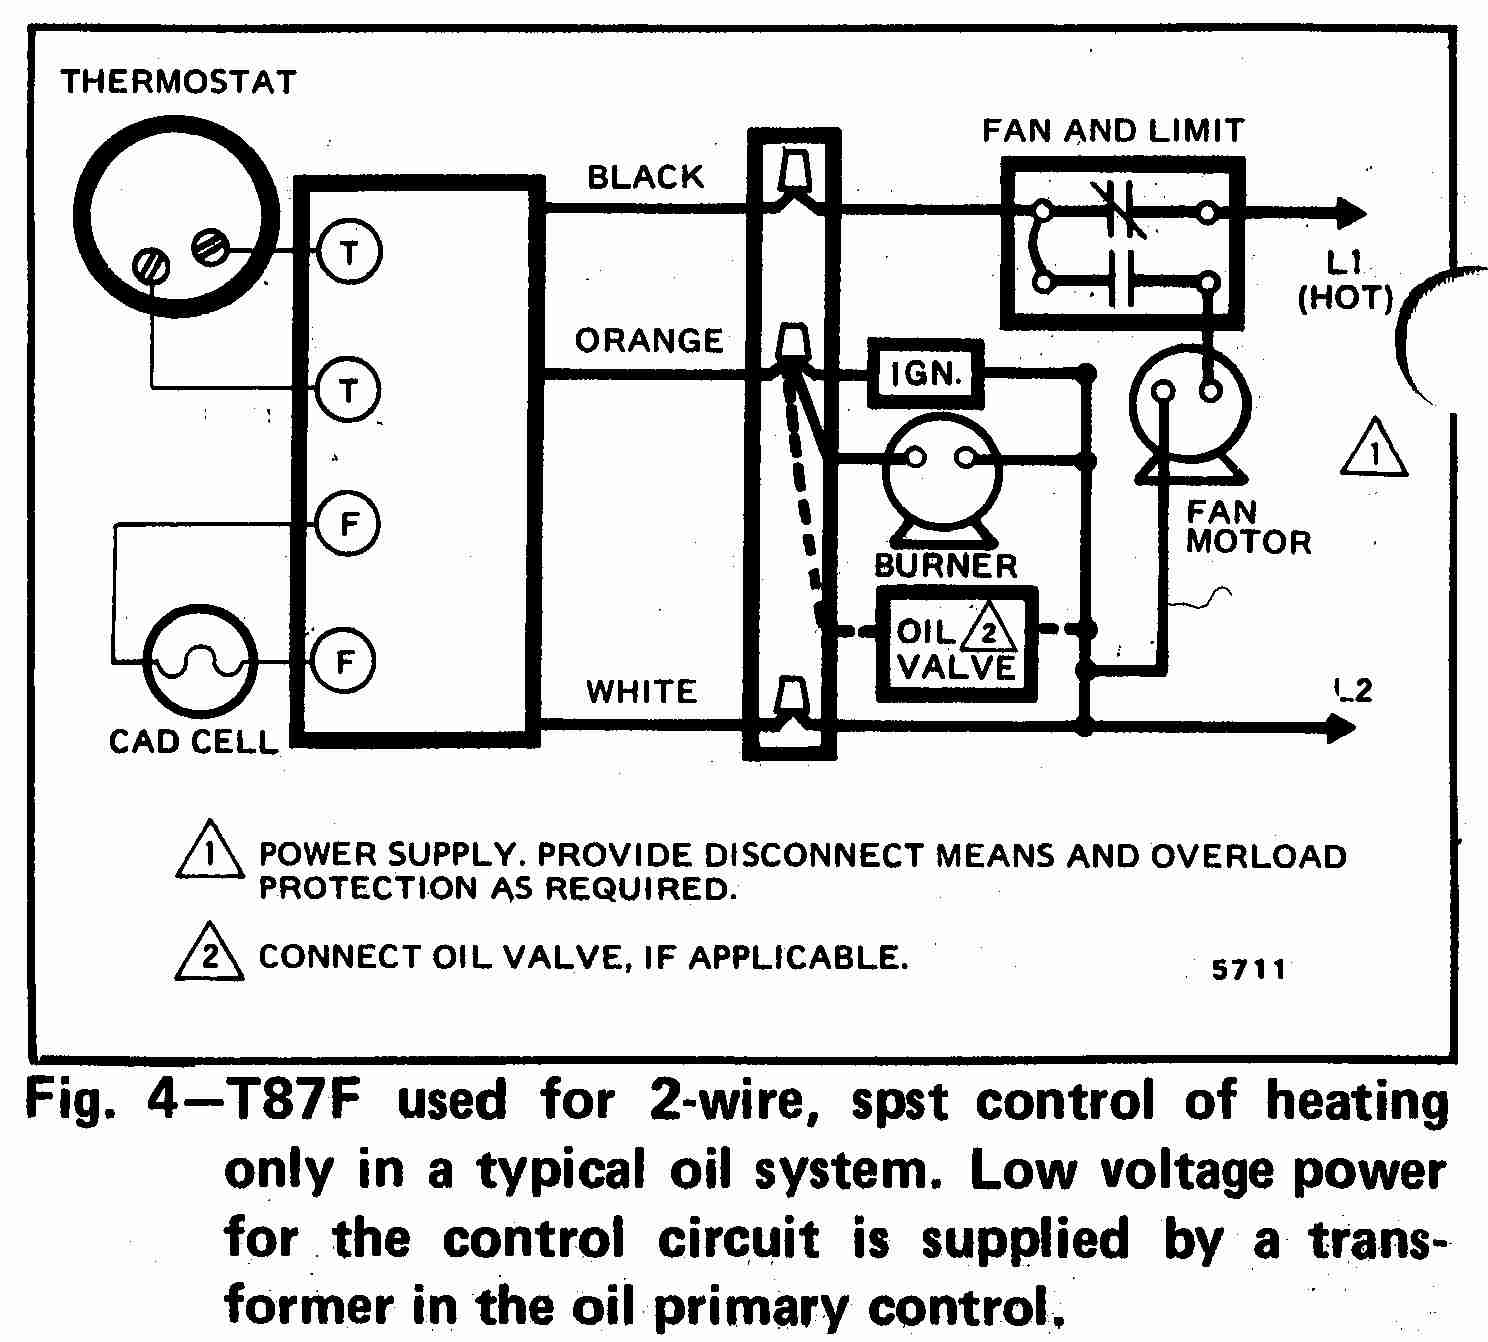 TT_T87F_0002_2W_DJF room thermostat wiring diagrams for hvac systems honeywell thermostat wiring diagram at n-0.co